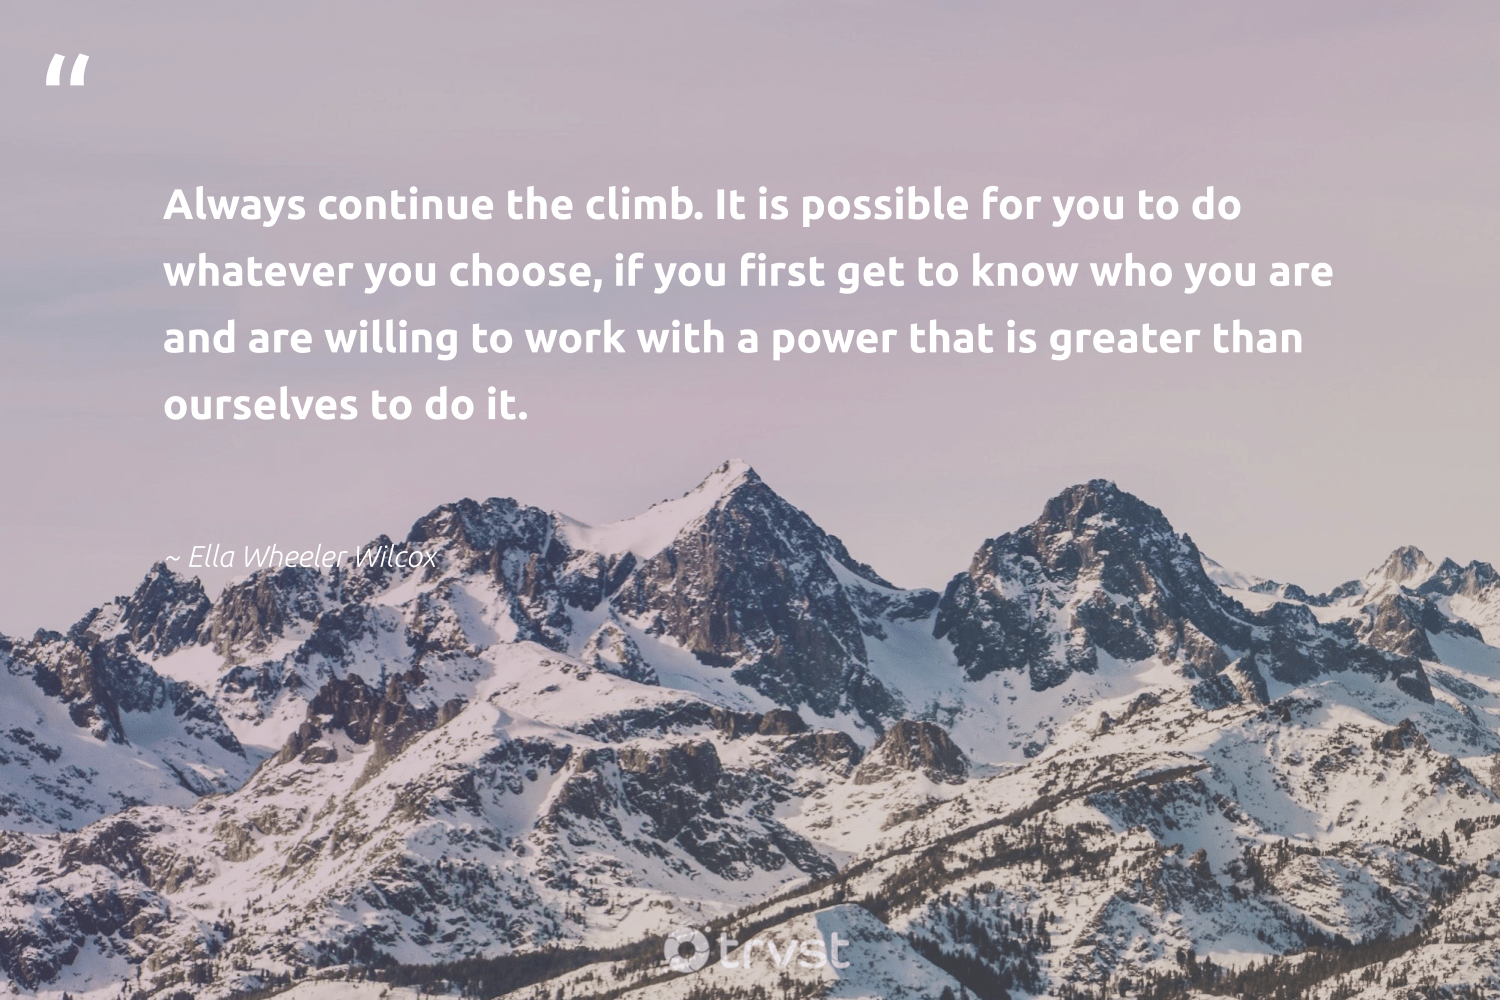 """""""Always continue the climb. It is possible for you to do whatever you choose, if you first get to know who you are and are willing to work with a power that is greater than ourselves to do it.""""  - Ella Wheeler Wilcox #trvst #quotes #softskills #dosomething #begreat #bethechange #nevergiveup #gogreen #futureofwork #socialimpact #planetearthfirst #ecoconscious"""